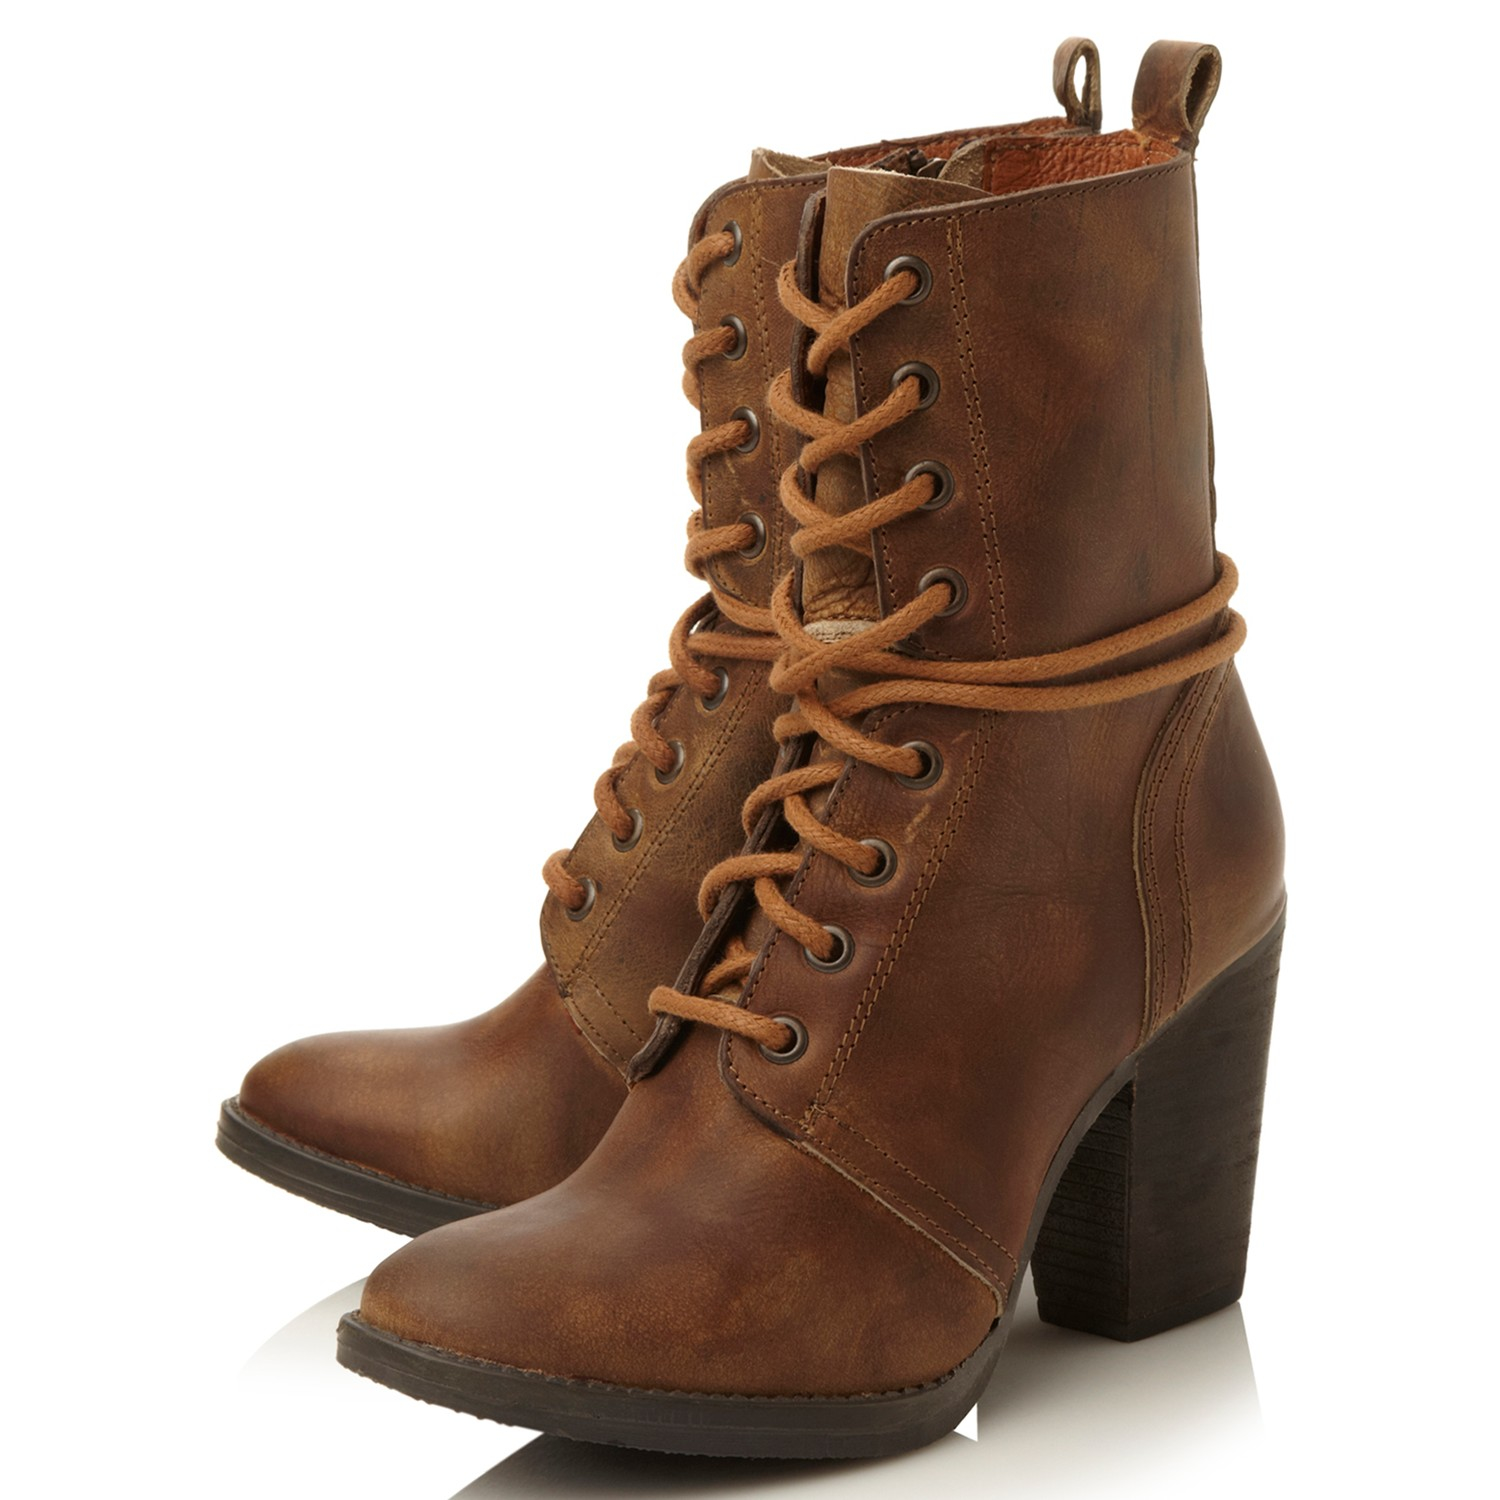 steve madden jupiter block heeled lace up ankle boots in